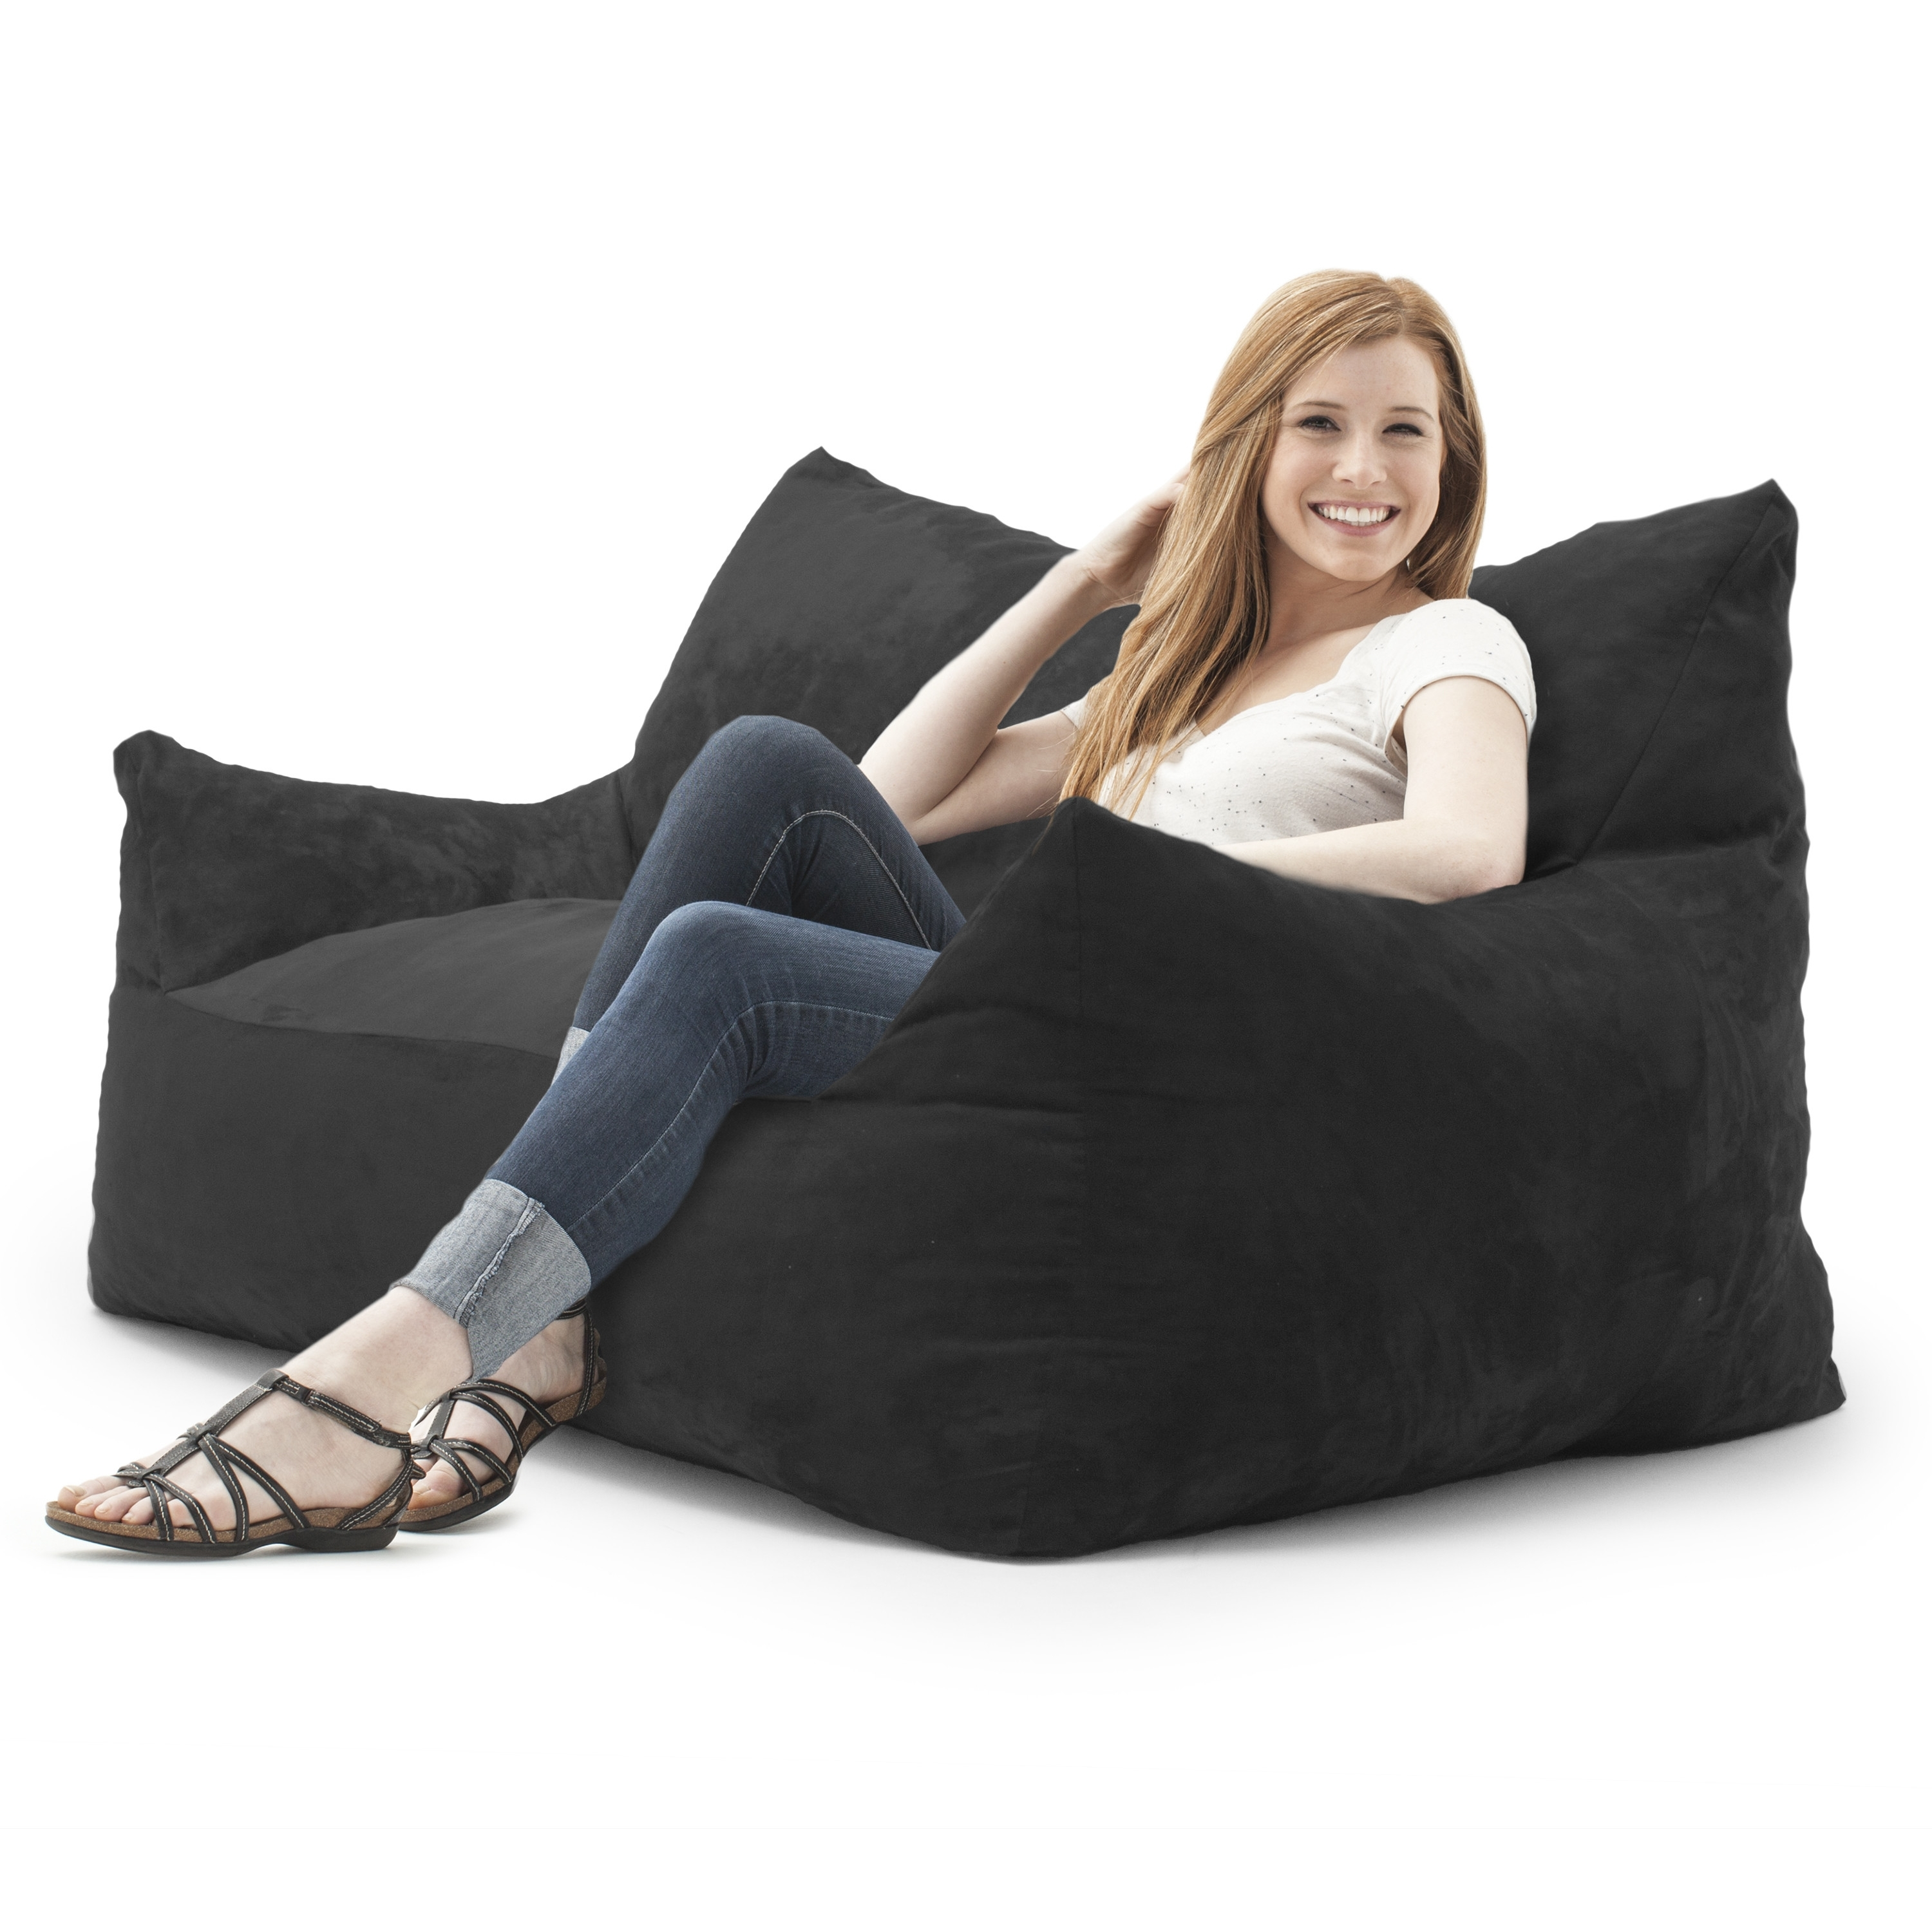 2019 Bean Bag Sofas For Amazing Beanbag Sofa 64 On Sofa Design Ideas With Beanbag Sofa (View 12 of 20)